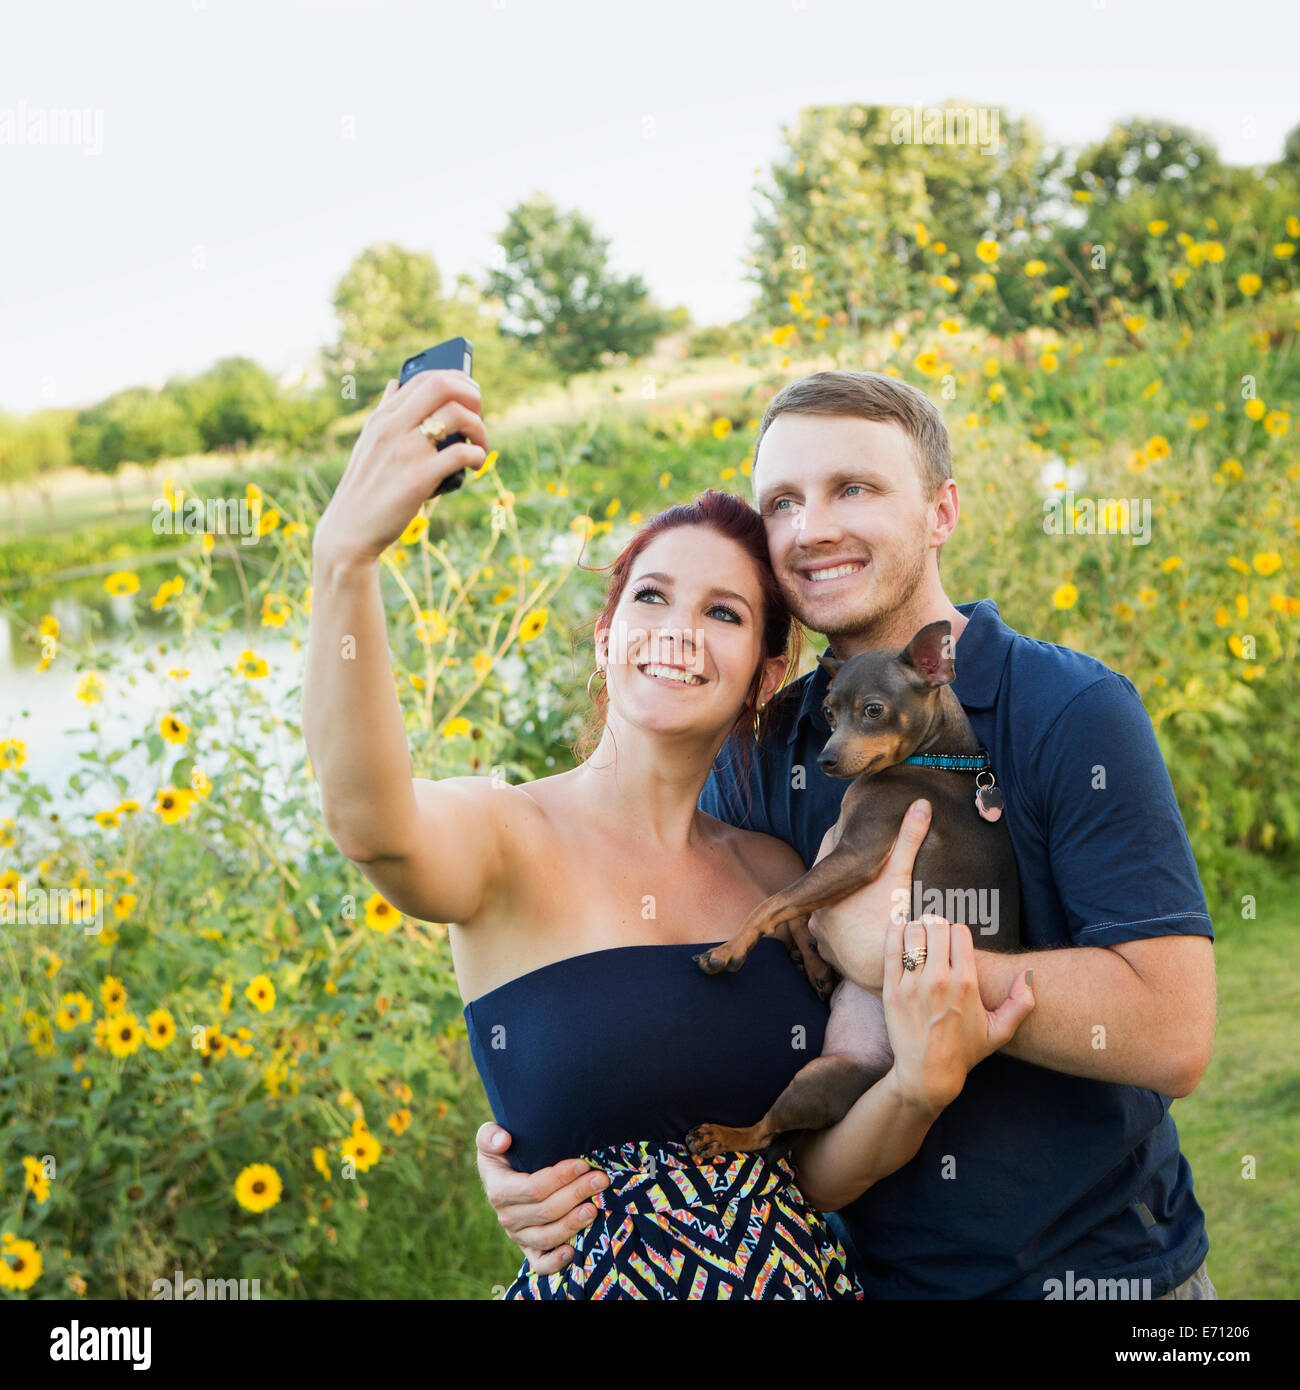 A couple playing with their small dog in the park, taking a selfy. - Stock Image